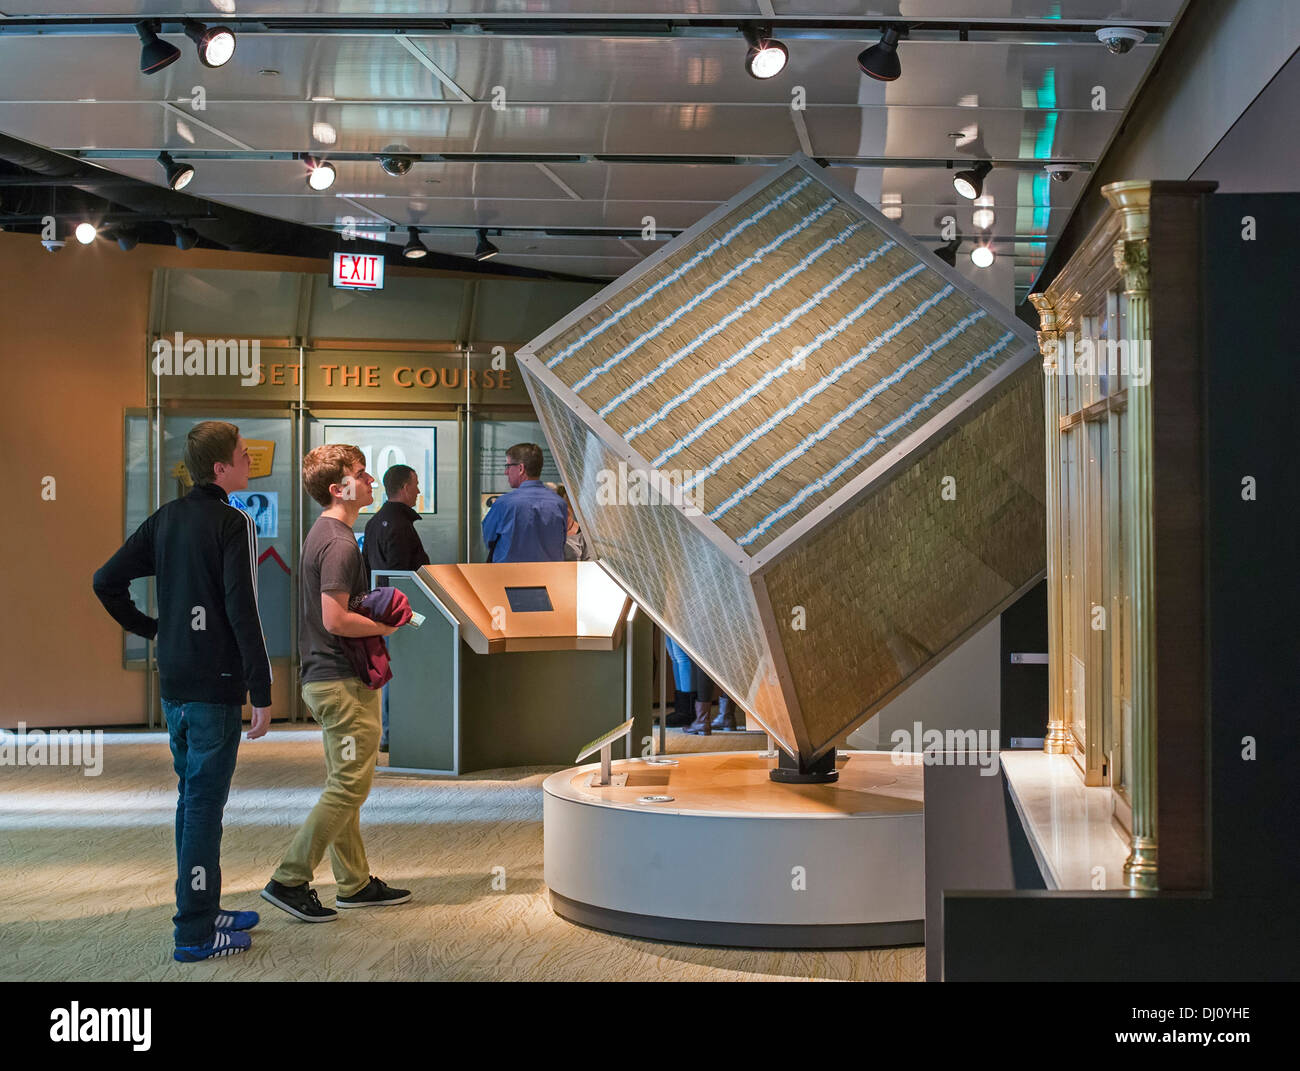 The Million Dollar Cube at the Federal Reserve Bank of Chicago's Money Museum Stock Photo